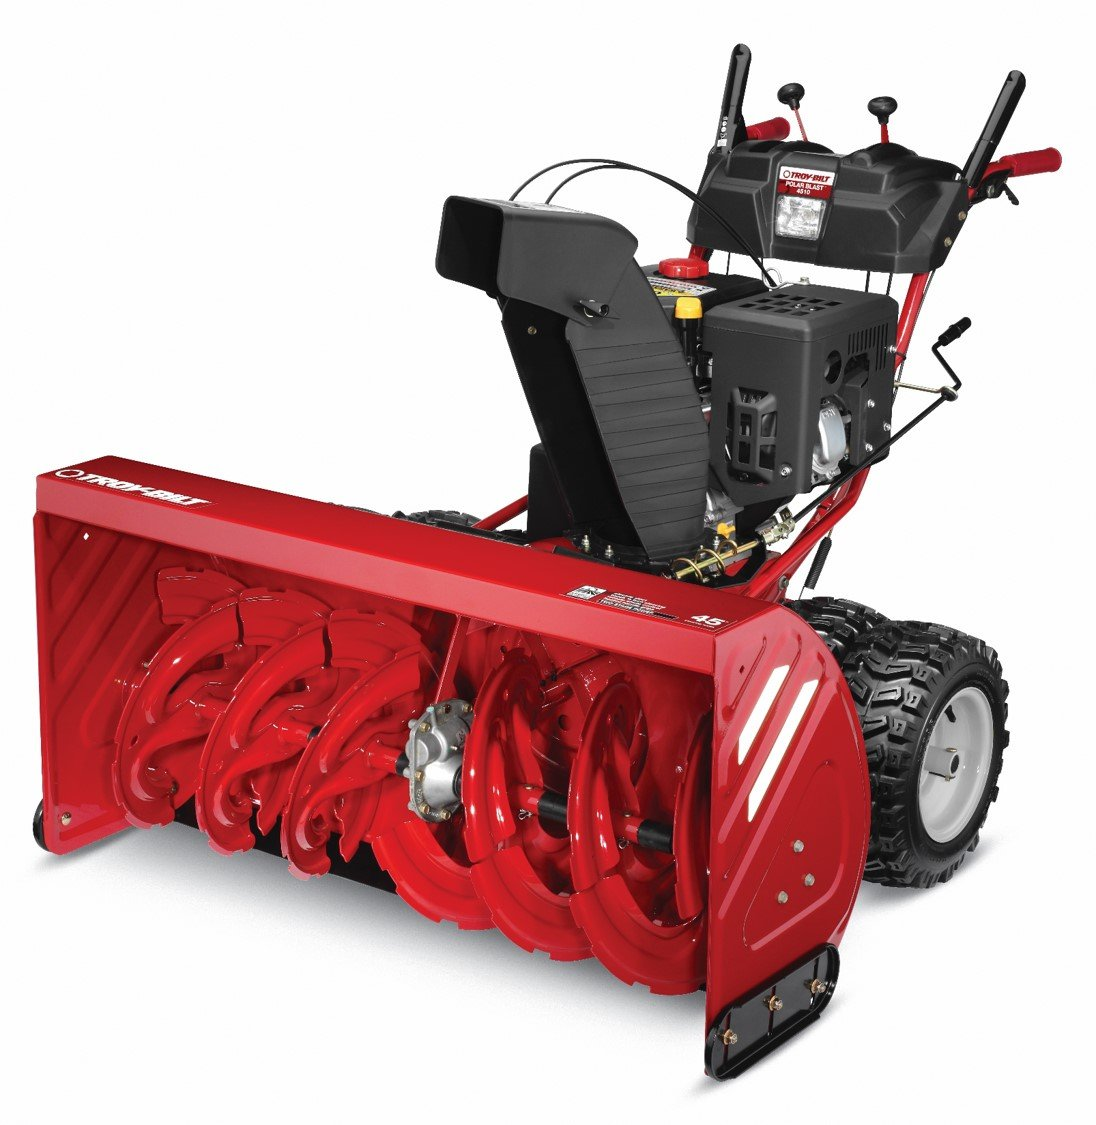 Troy-Bilt Polar Blast 4510 420cc Electric Start 45-Inch Two-Stage Gas Snow Thrower